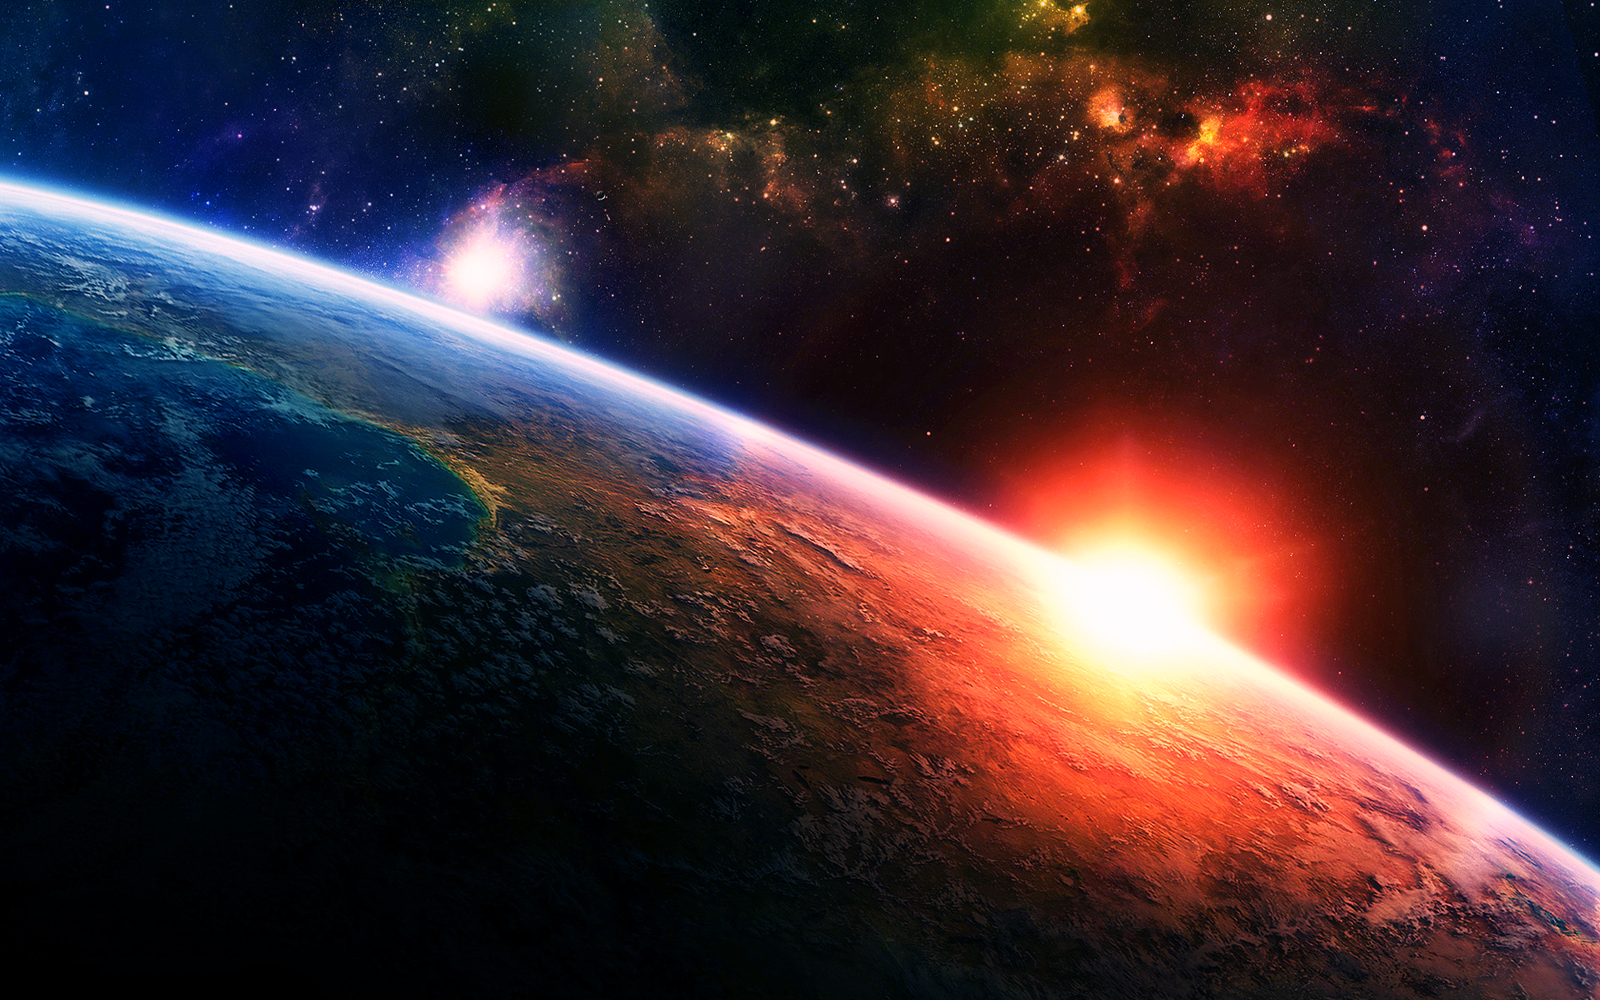 Outer space wallpapers wallpapersafari for Outer space design wallpaper